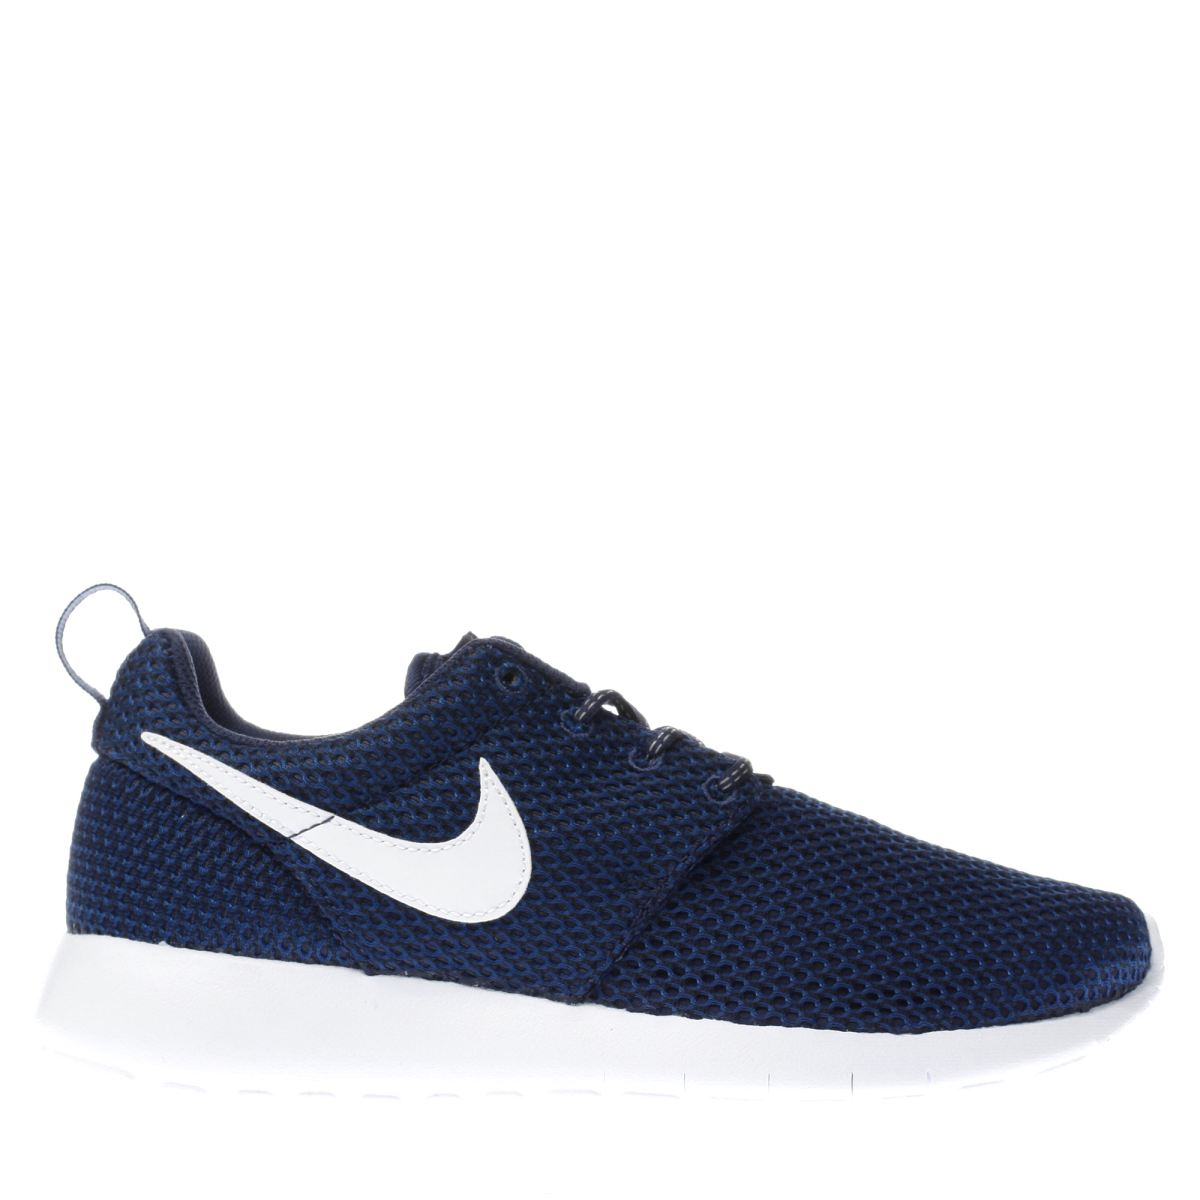 nike navy & white roshe one Boys Youth Trainers